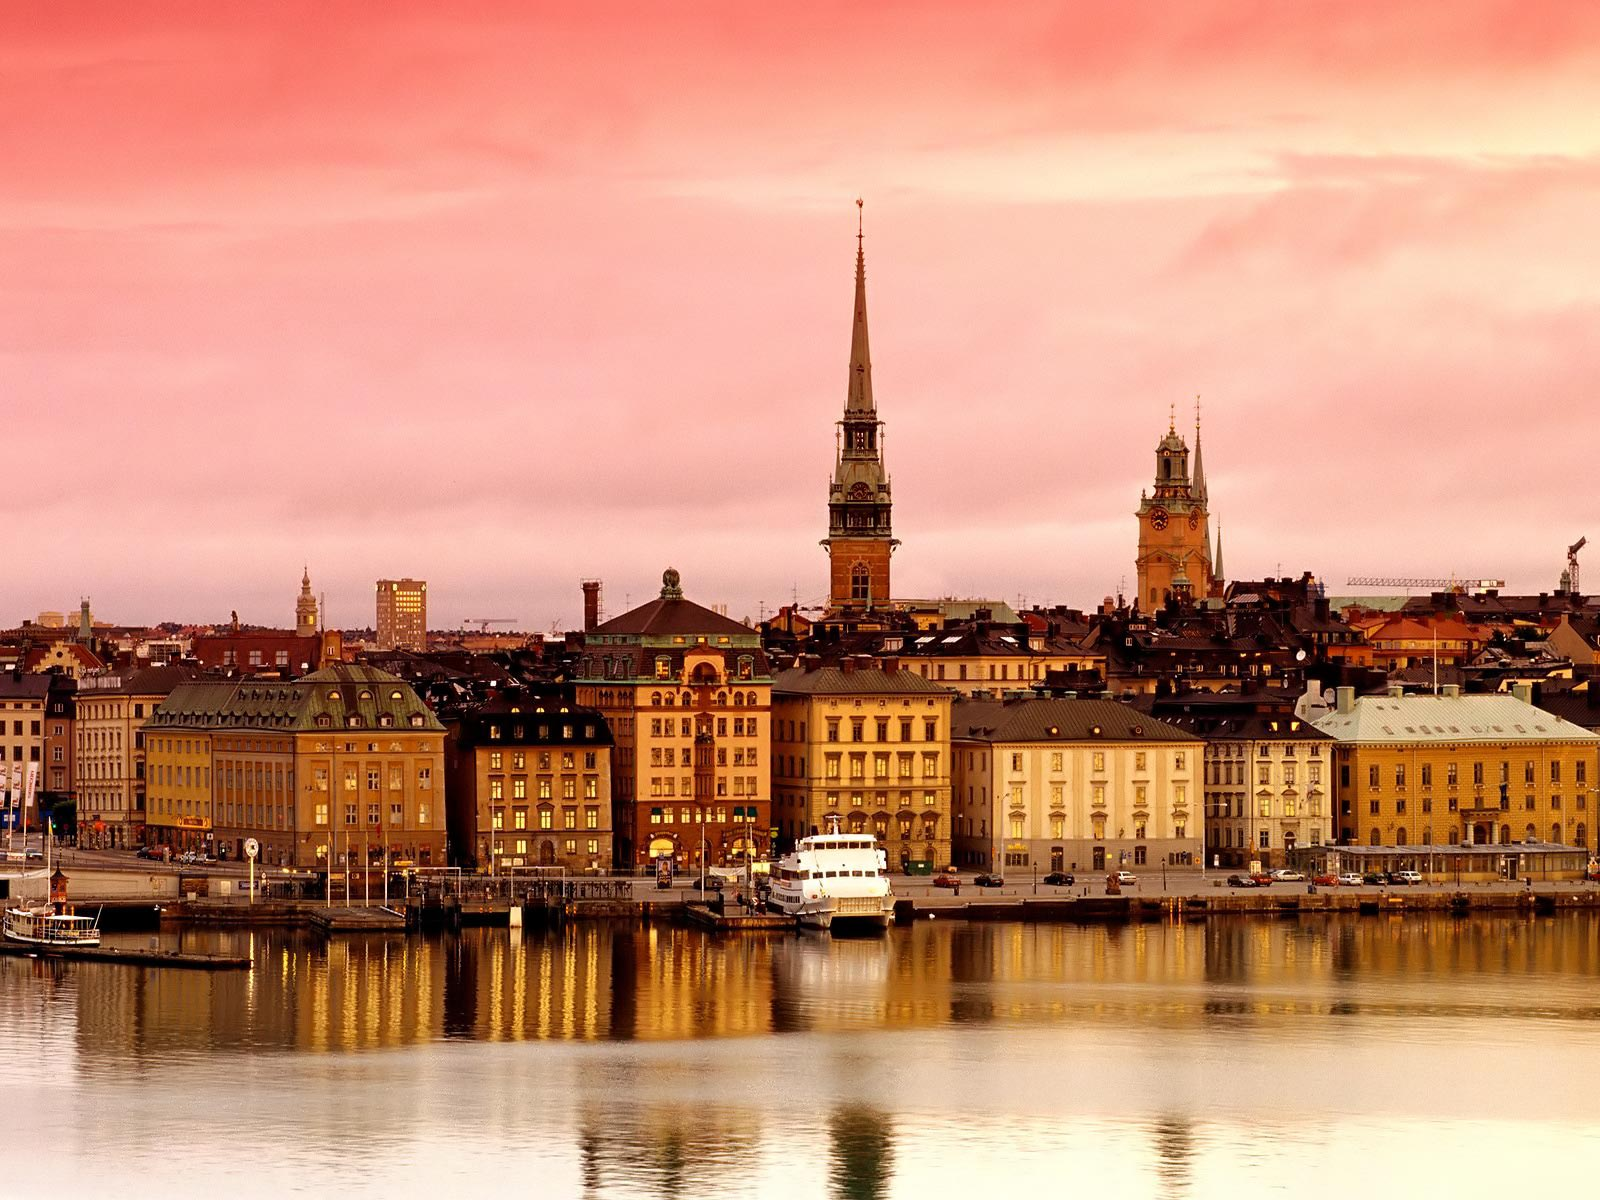 Sweden Desktop Wallpapers   HD Wallpapers Backgrounds of Your Choice 1600x1200